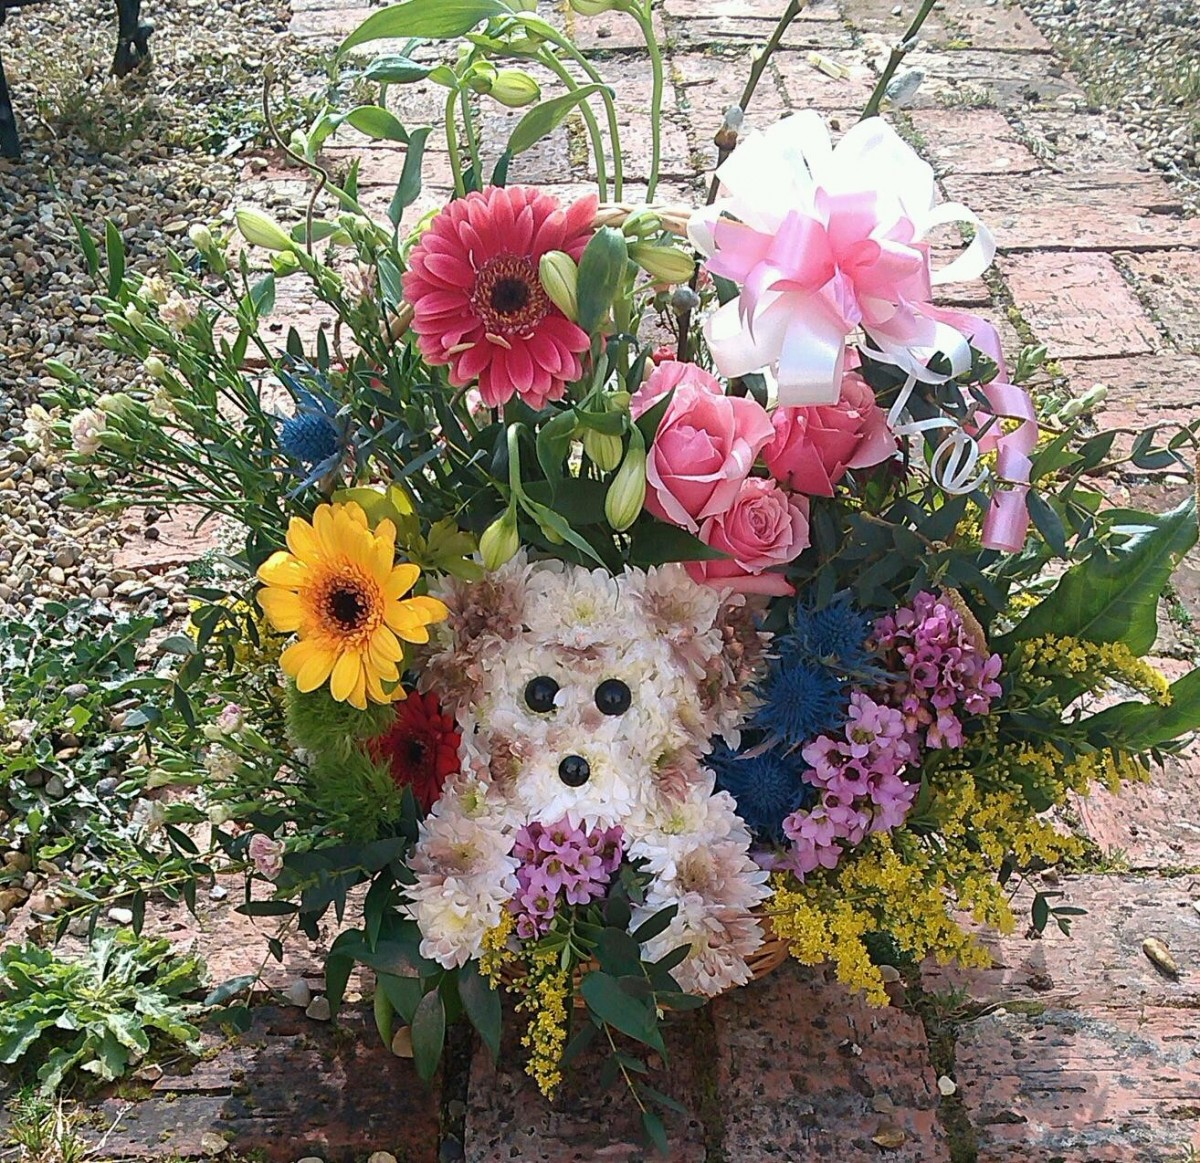 Puppy Basket - £40.00 in the Mothers Day Flowers category